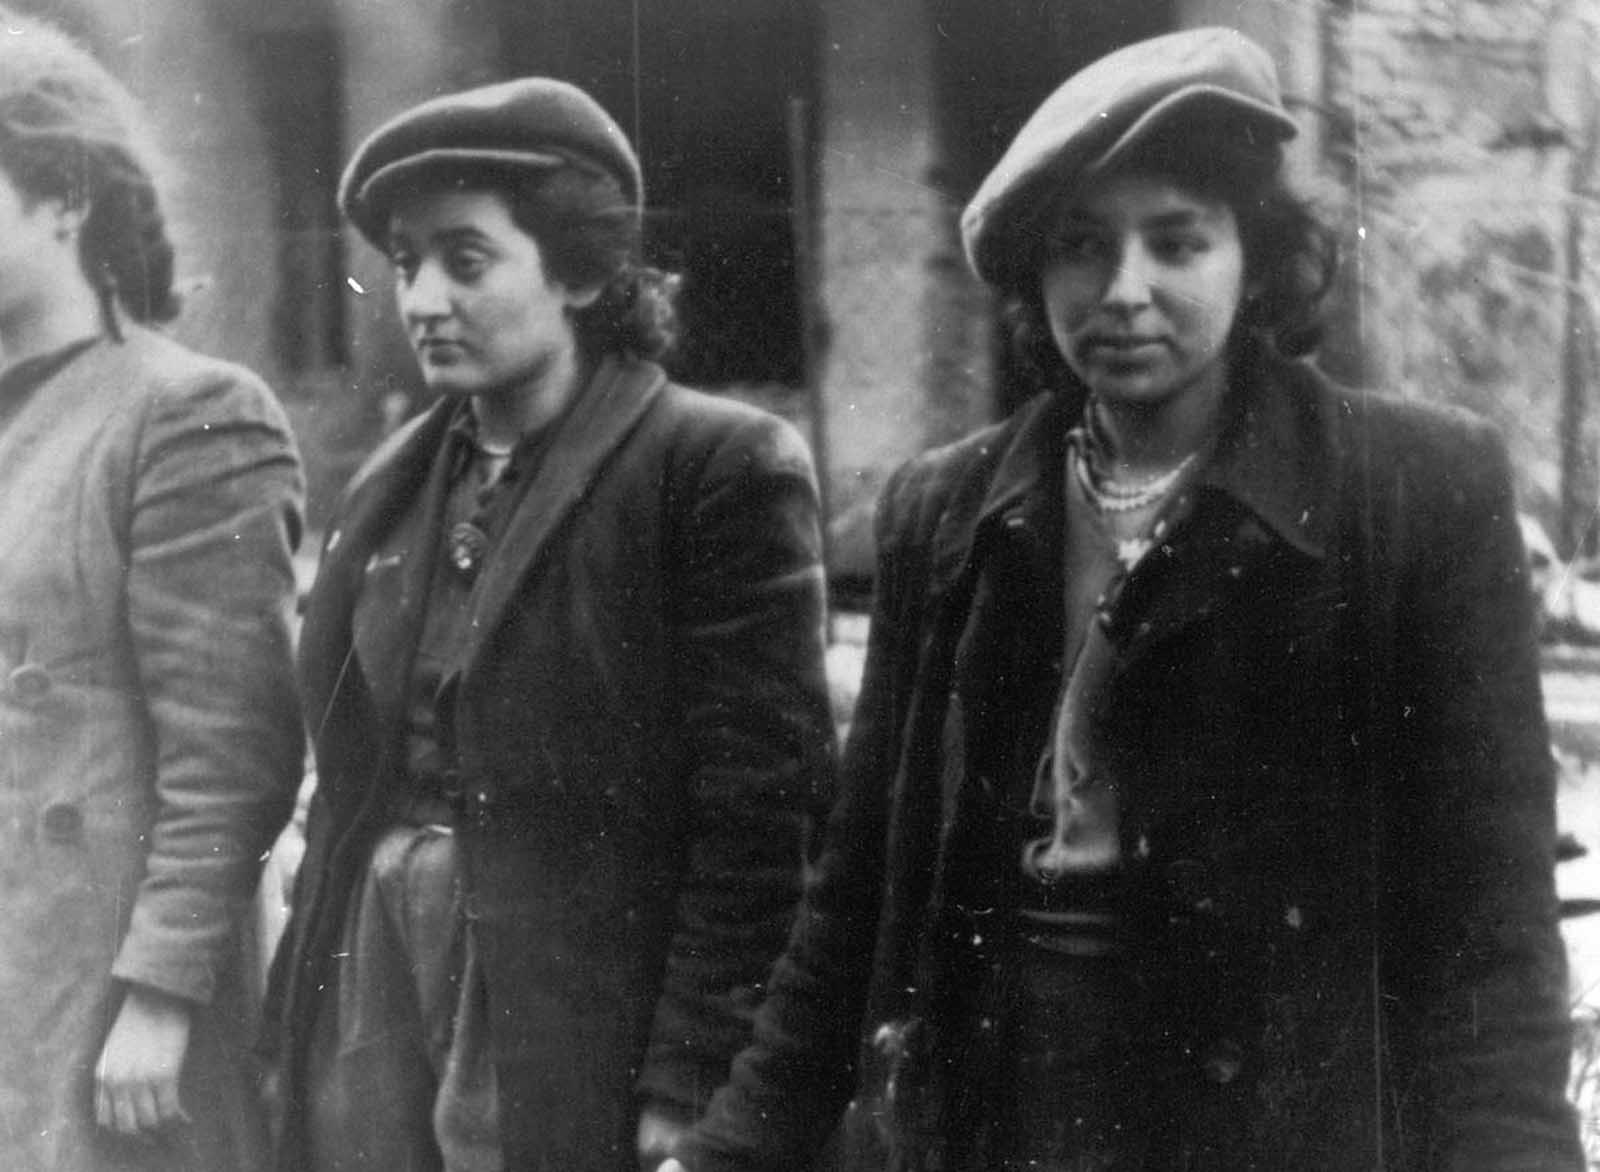 A group of young Jewish resistance fighters are being held under arrest by German SS soldiers in April/May 1943, during the destruction of the Warsaw Ghetto by German troops after an uprising in the Jewish quarter.